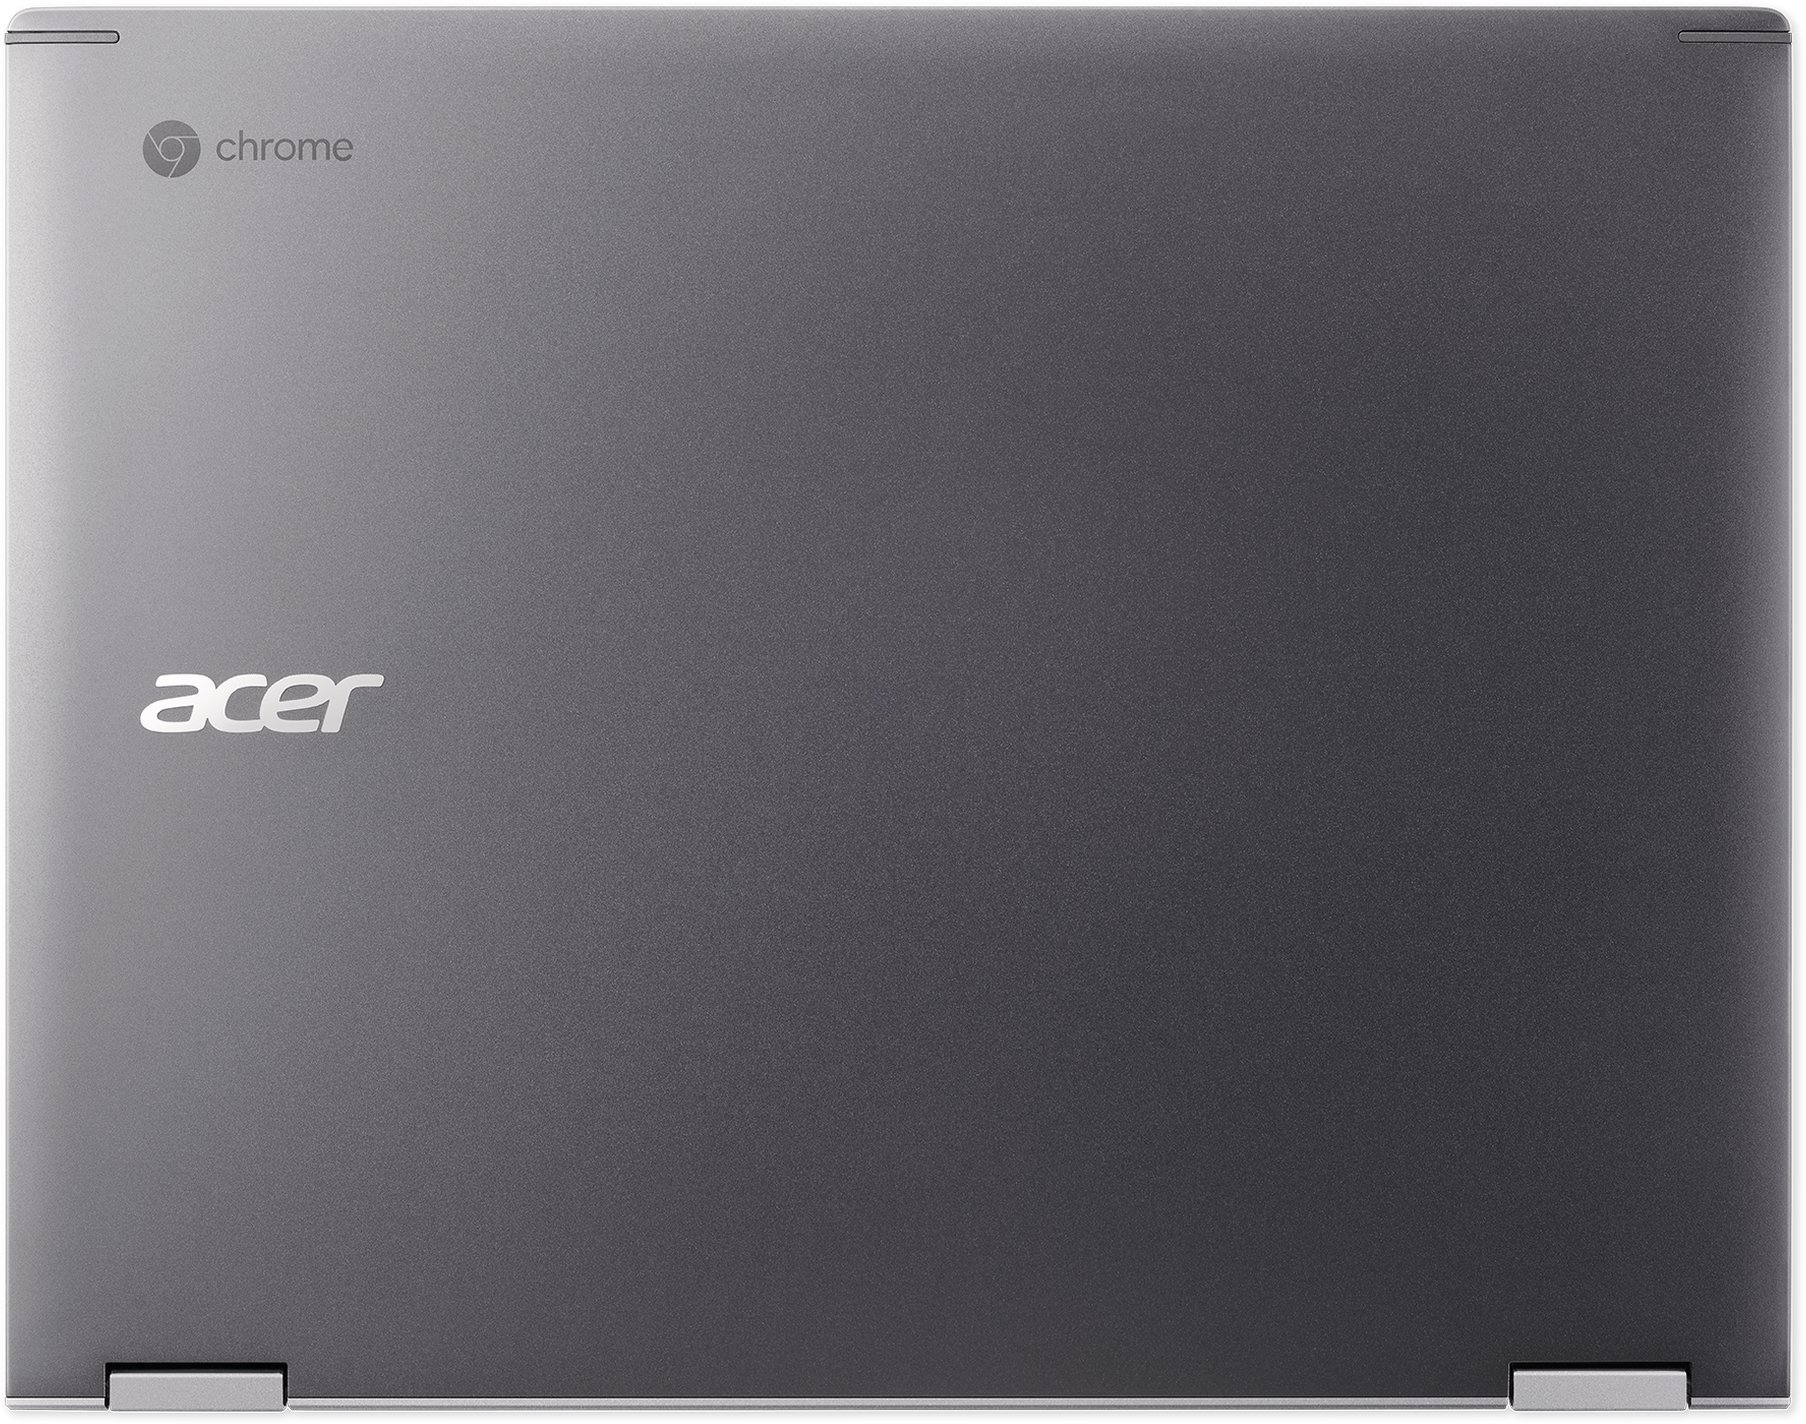 Acer ChromeBook Spin 13 CP713-1WN-55TX